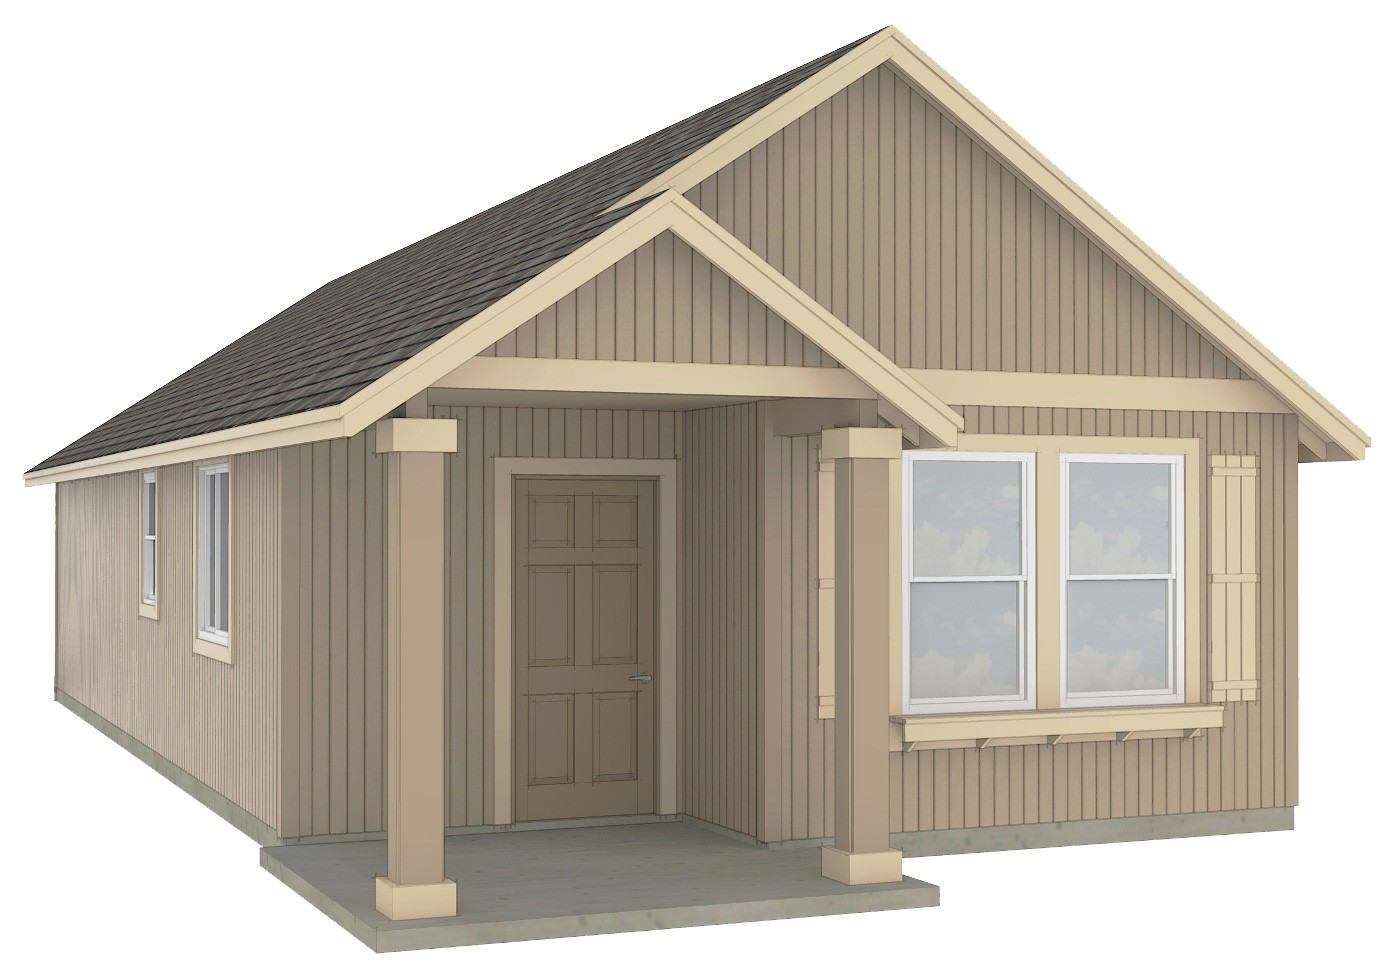 Miniature Home Plans Small House Plans Wise Size Homes